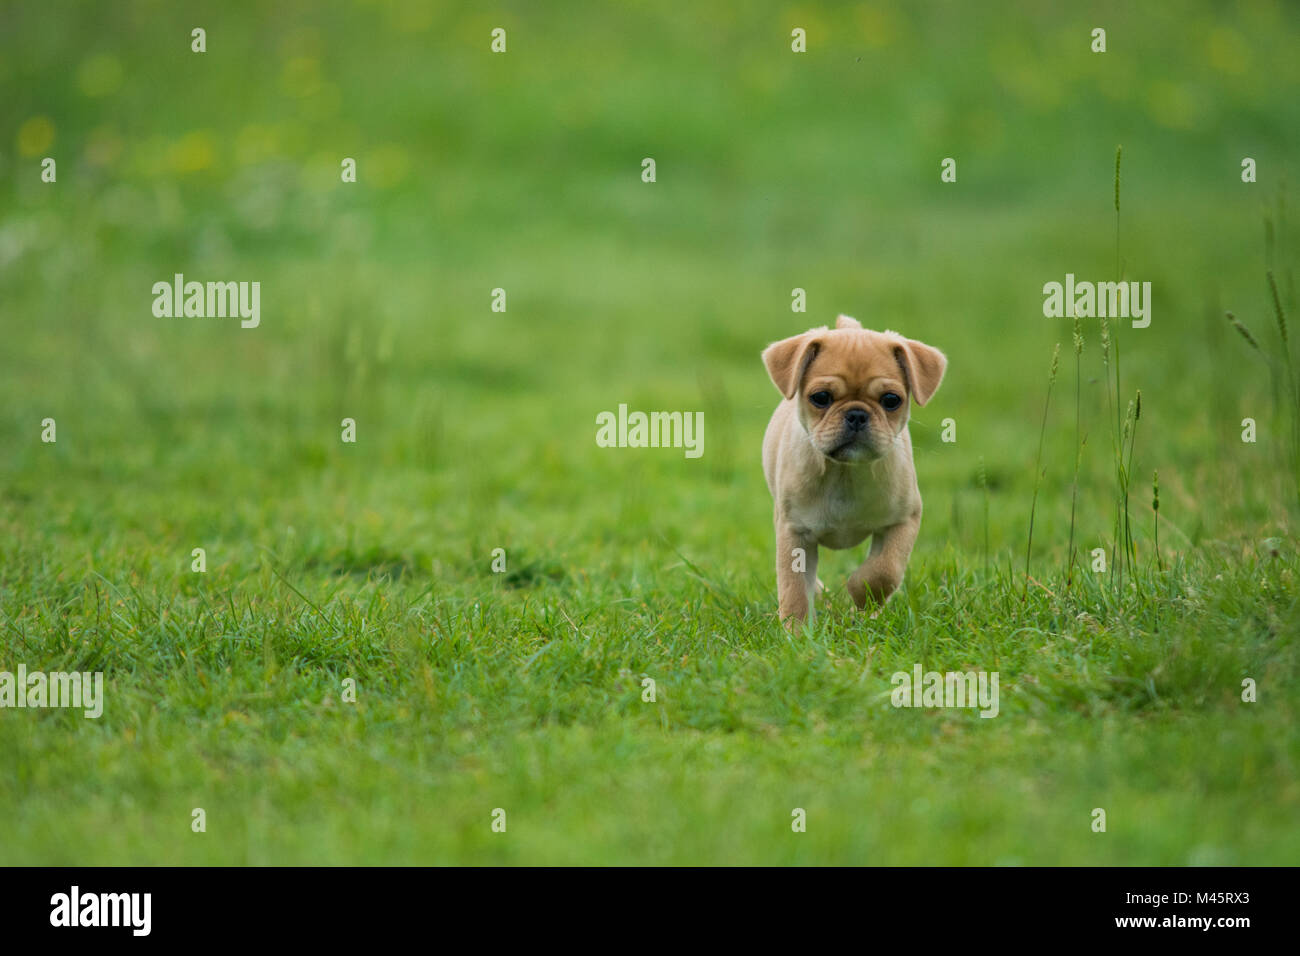 cute little pug puppy on a soft green background - Stock Image